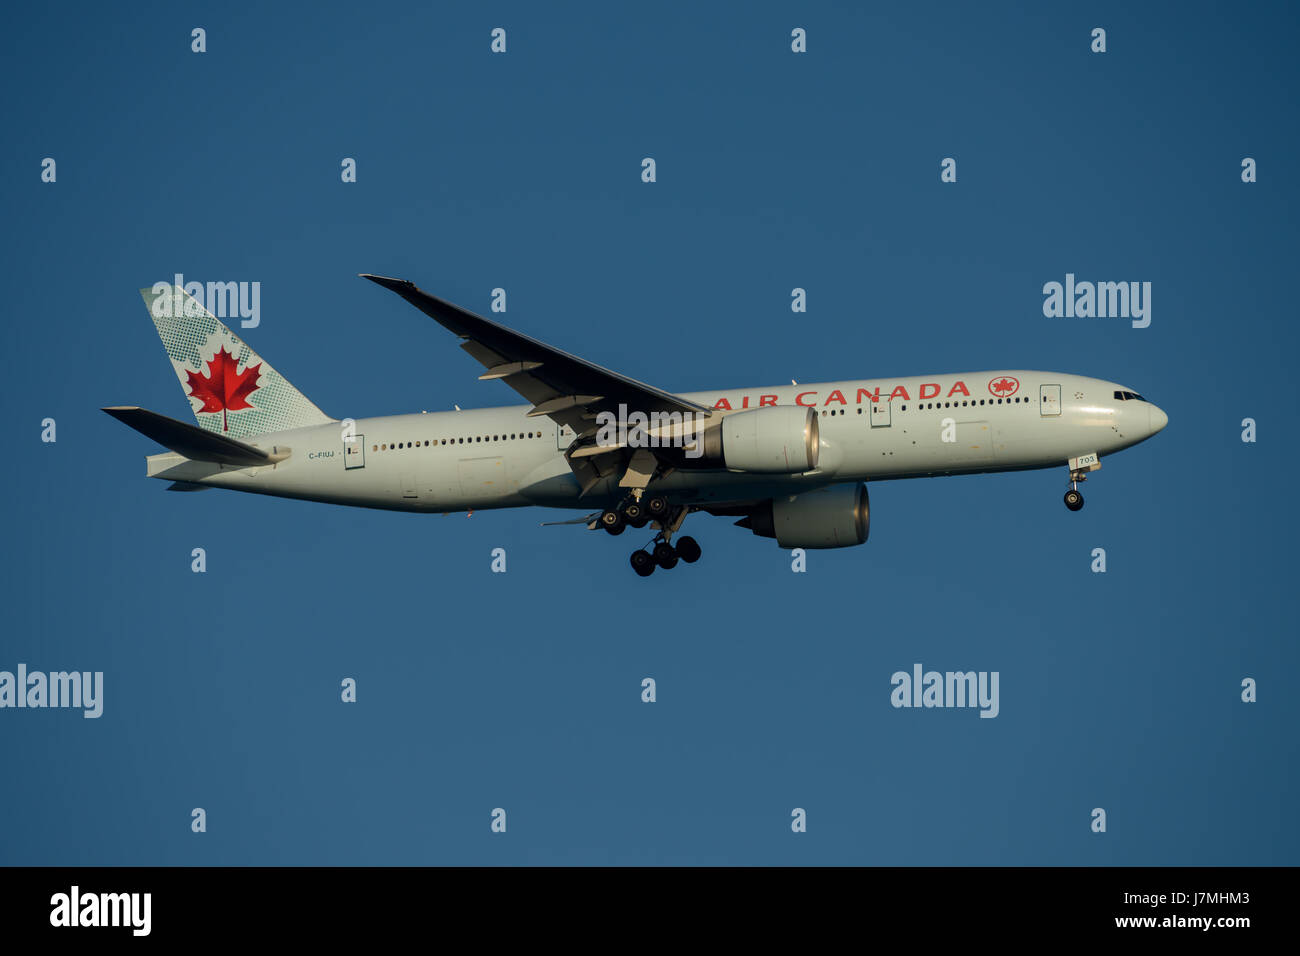 Air Canada Airlines Boeing 777 on Final approach to Sydney Airport on Tuesday 23 May 2017 - Stock Image